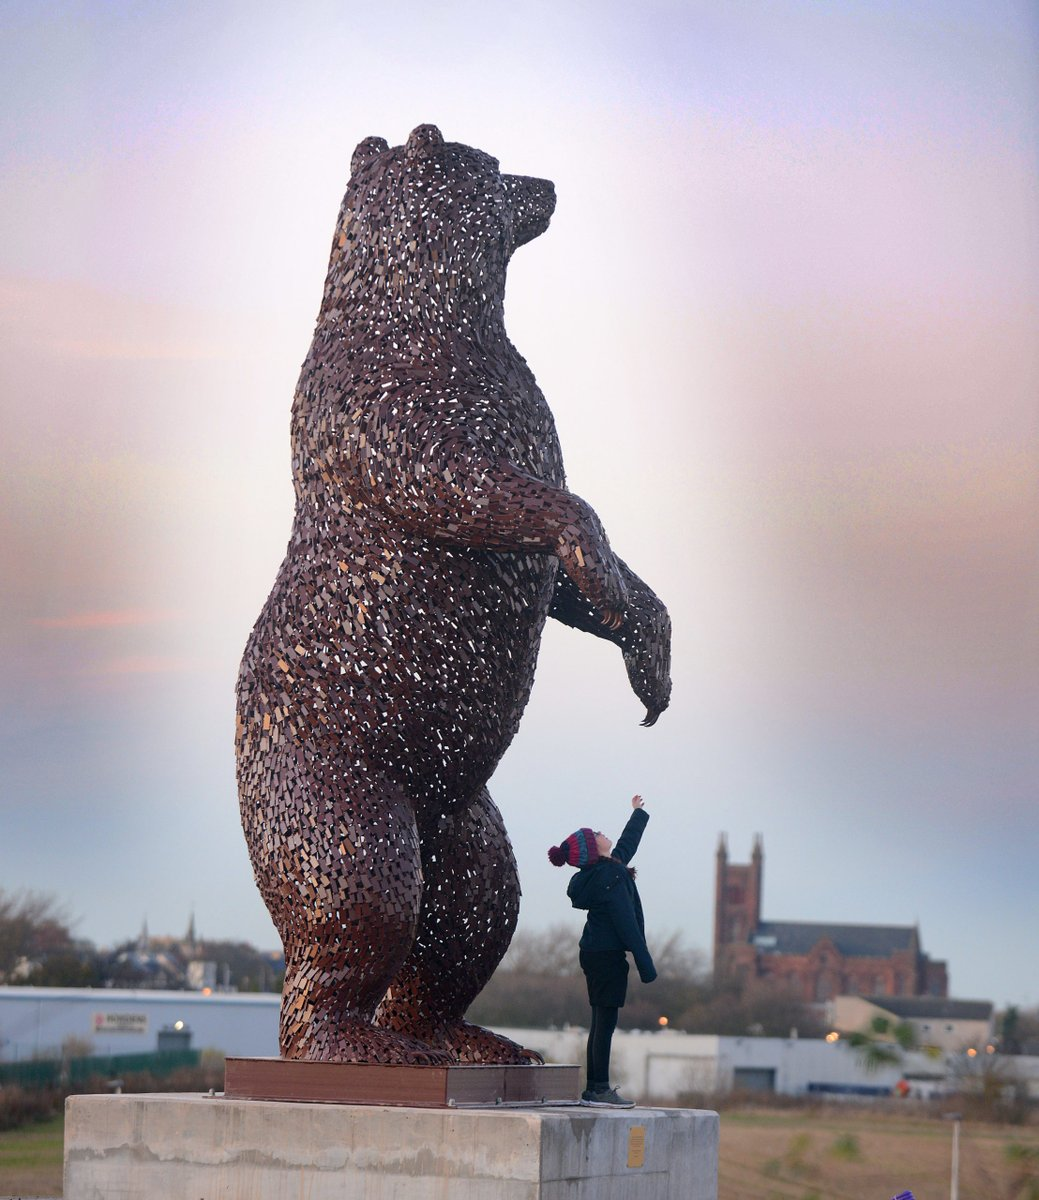 A steel sculpture of a bear in tribute to conservationist John Muir has been unveiled in Dunbar, East Lothian. The welded artwork, standing at five metres (16ft) high, was sculpted by Scottish artist Andy Scott, the man behind the Kelpies.